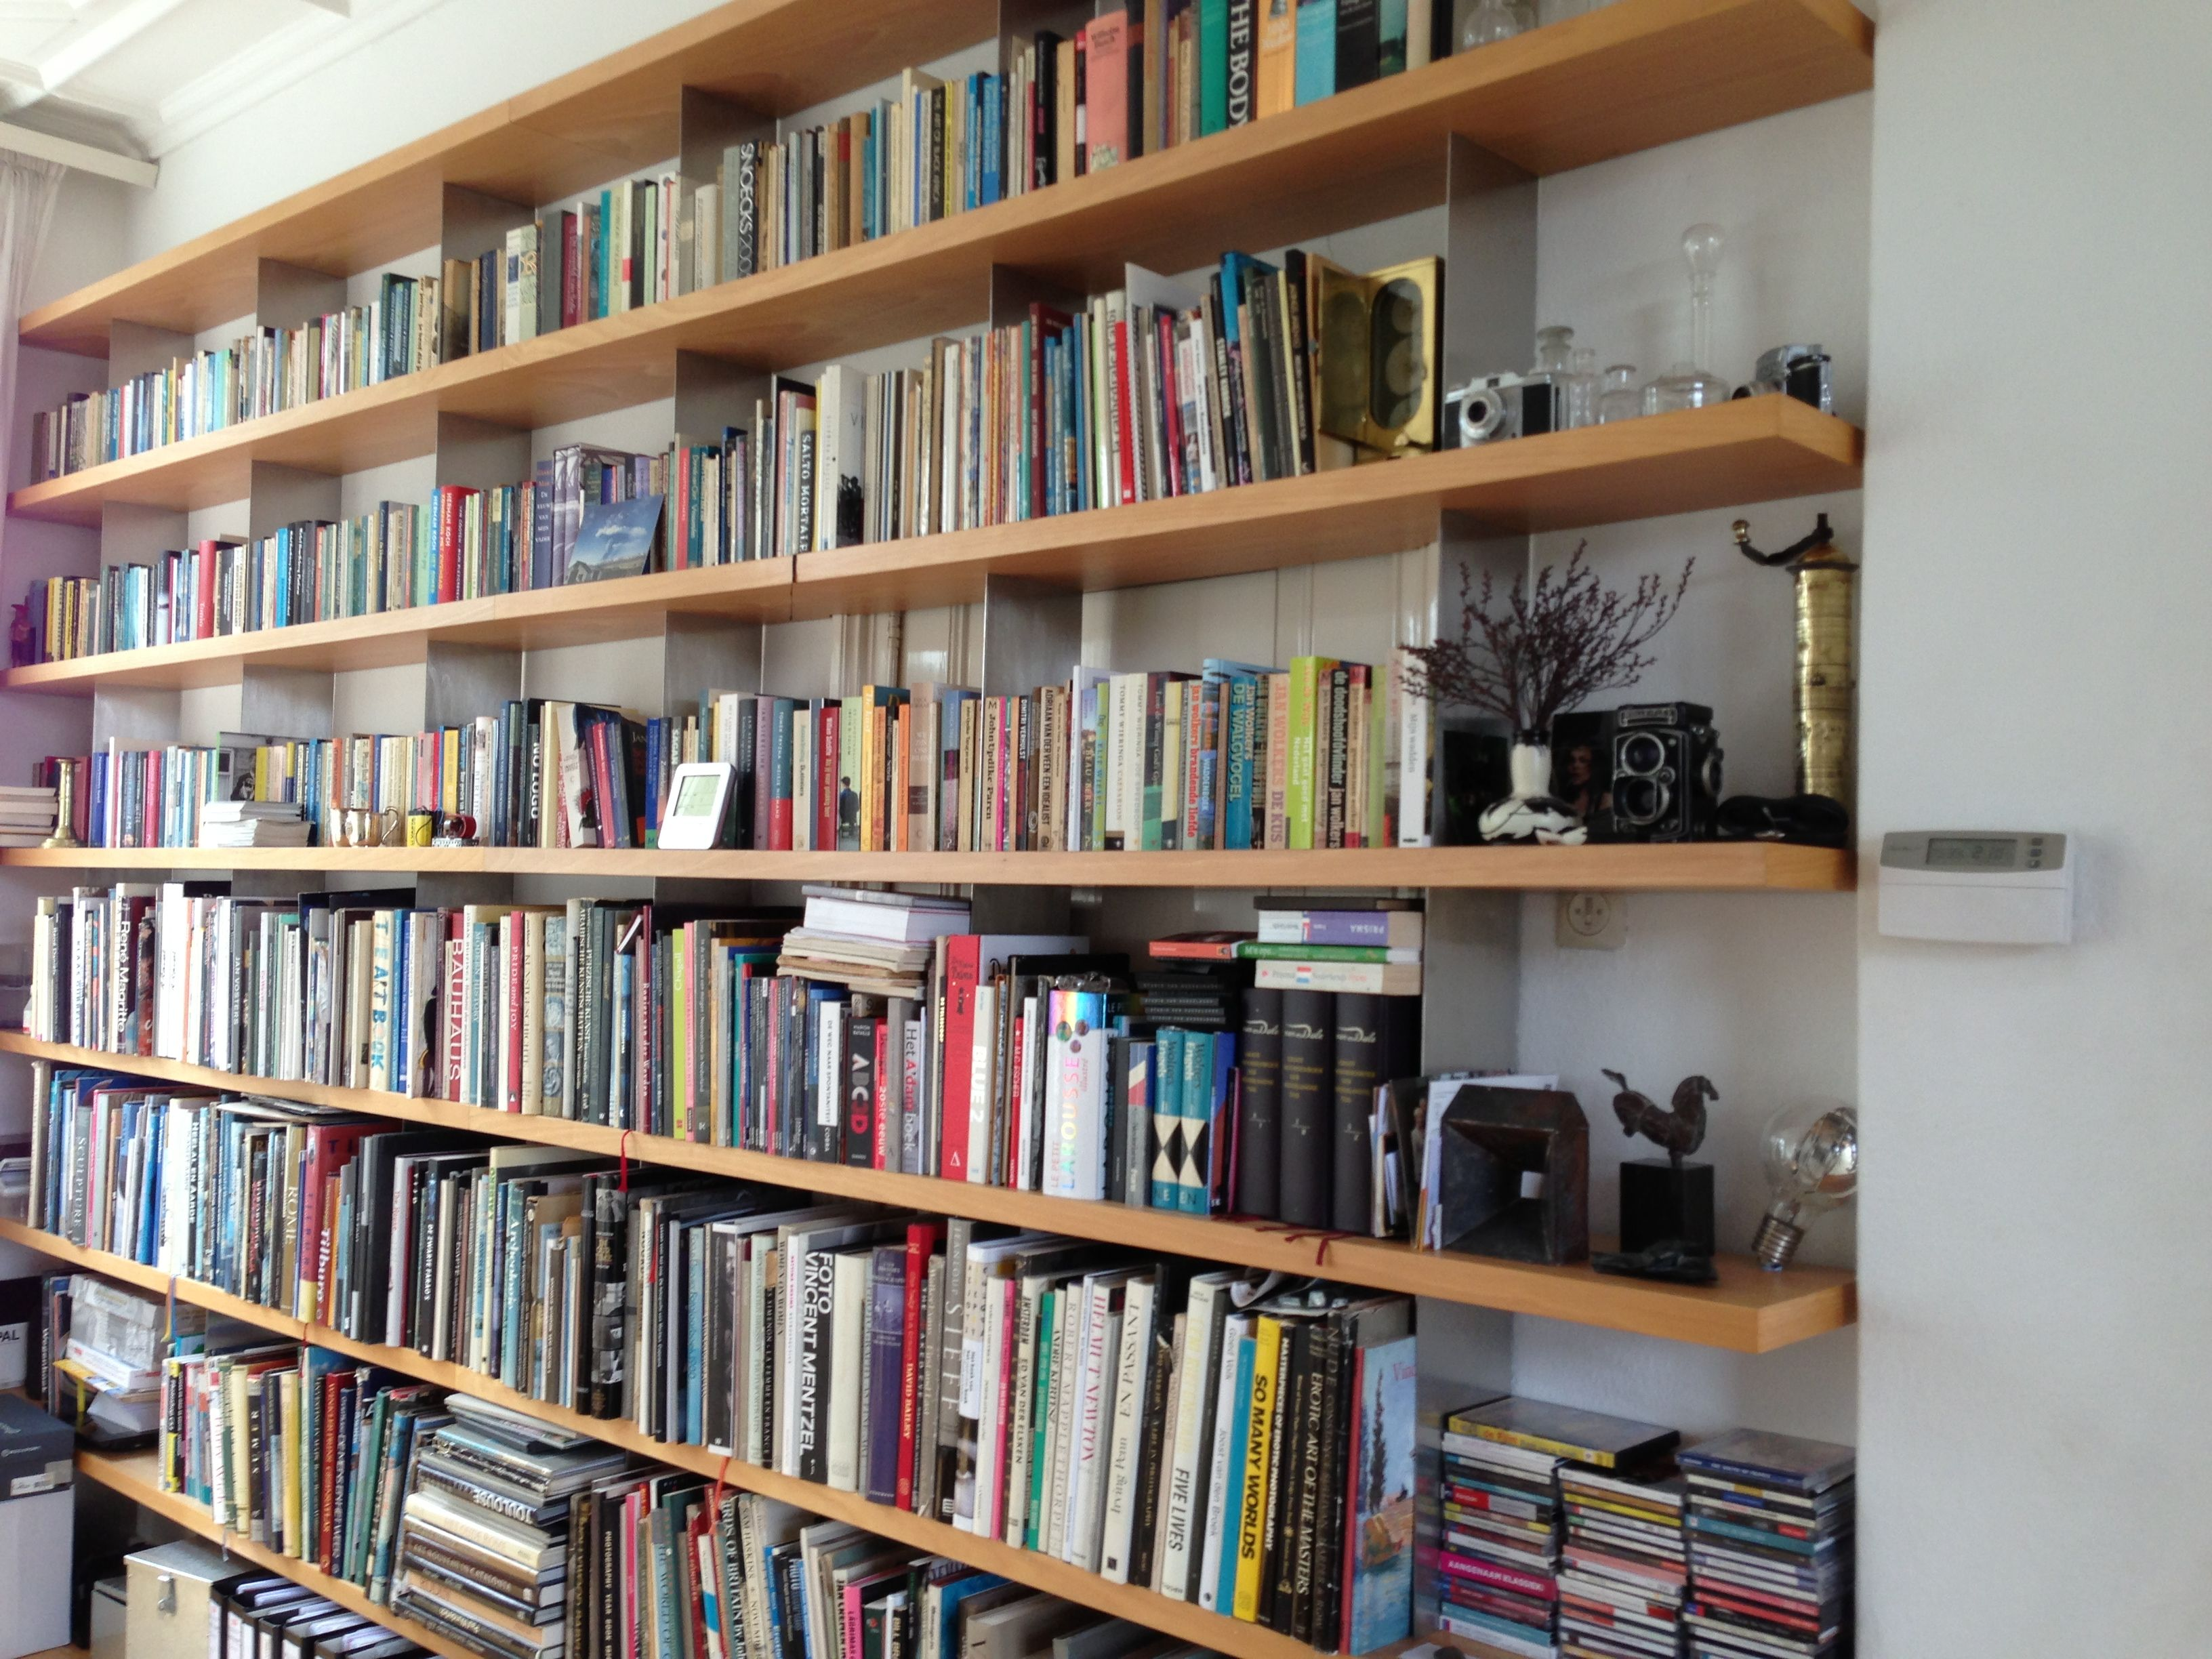 Superb img of Pin by Petry Hoogenboom on Bookshelves & Reading Places Pinterest with #8A5F41 color and 3264x2448 pixels